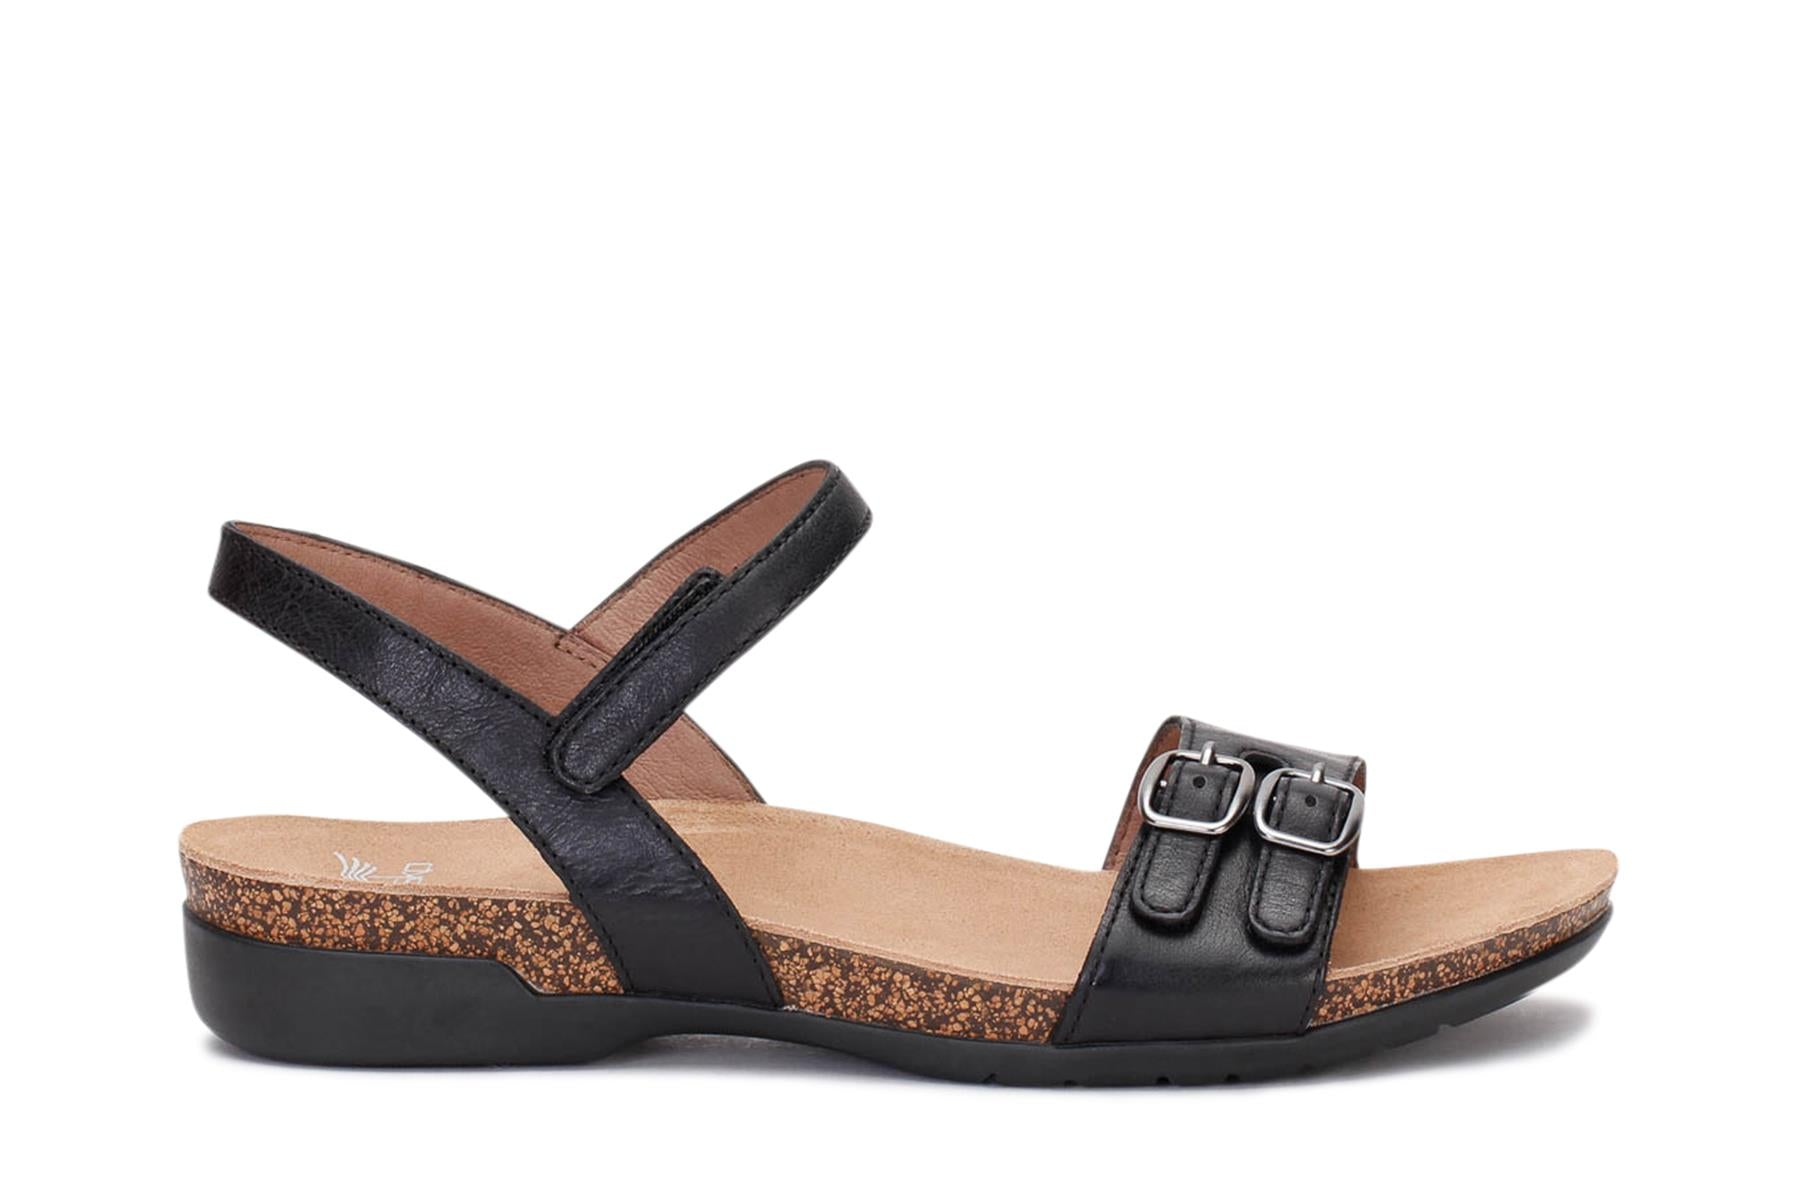 dansko-womens-sandals-rebekah-black-waxy-burnished-leather-6021470200-main